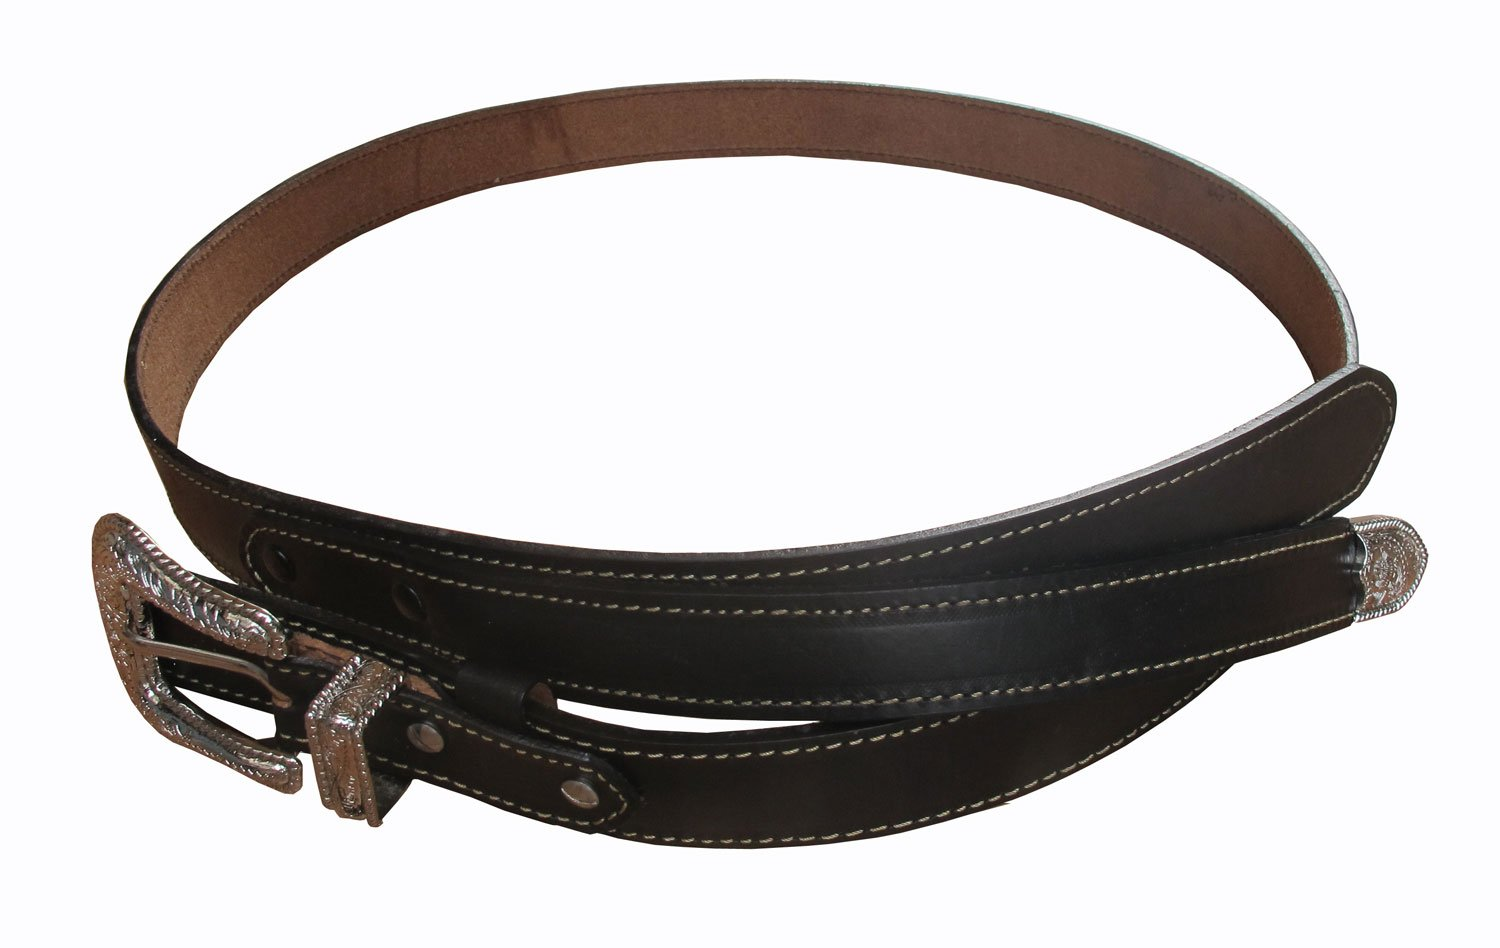 Danai Presents. VERY 6 PCS X NICE BELT @ BUCKLE GENUINE LEATHER SILVER TONE by Thai (Image #3)